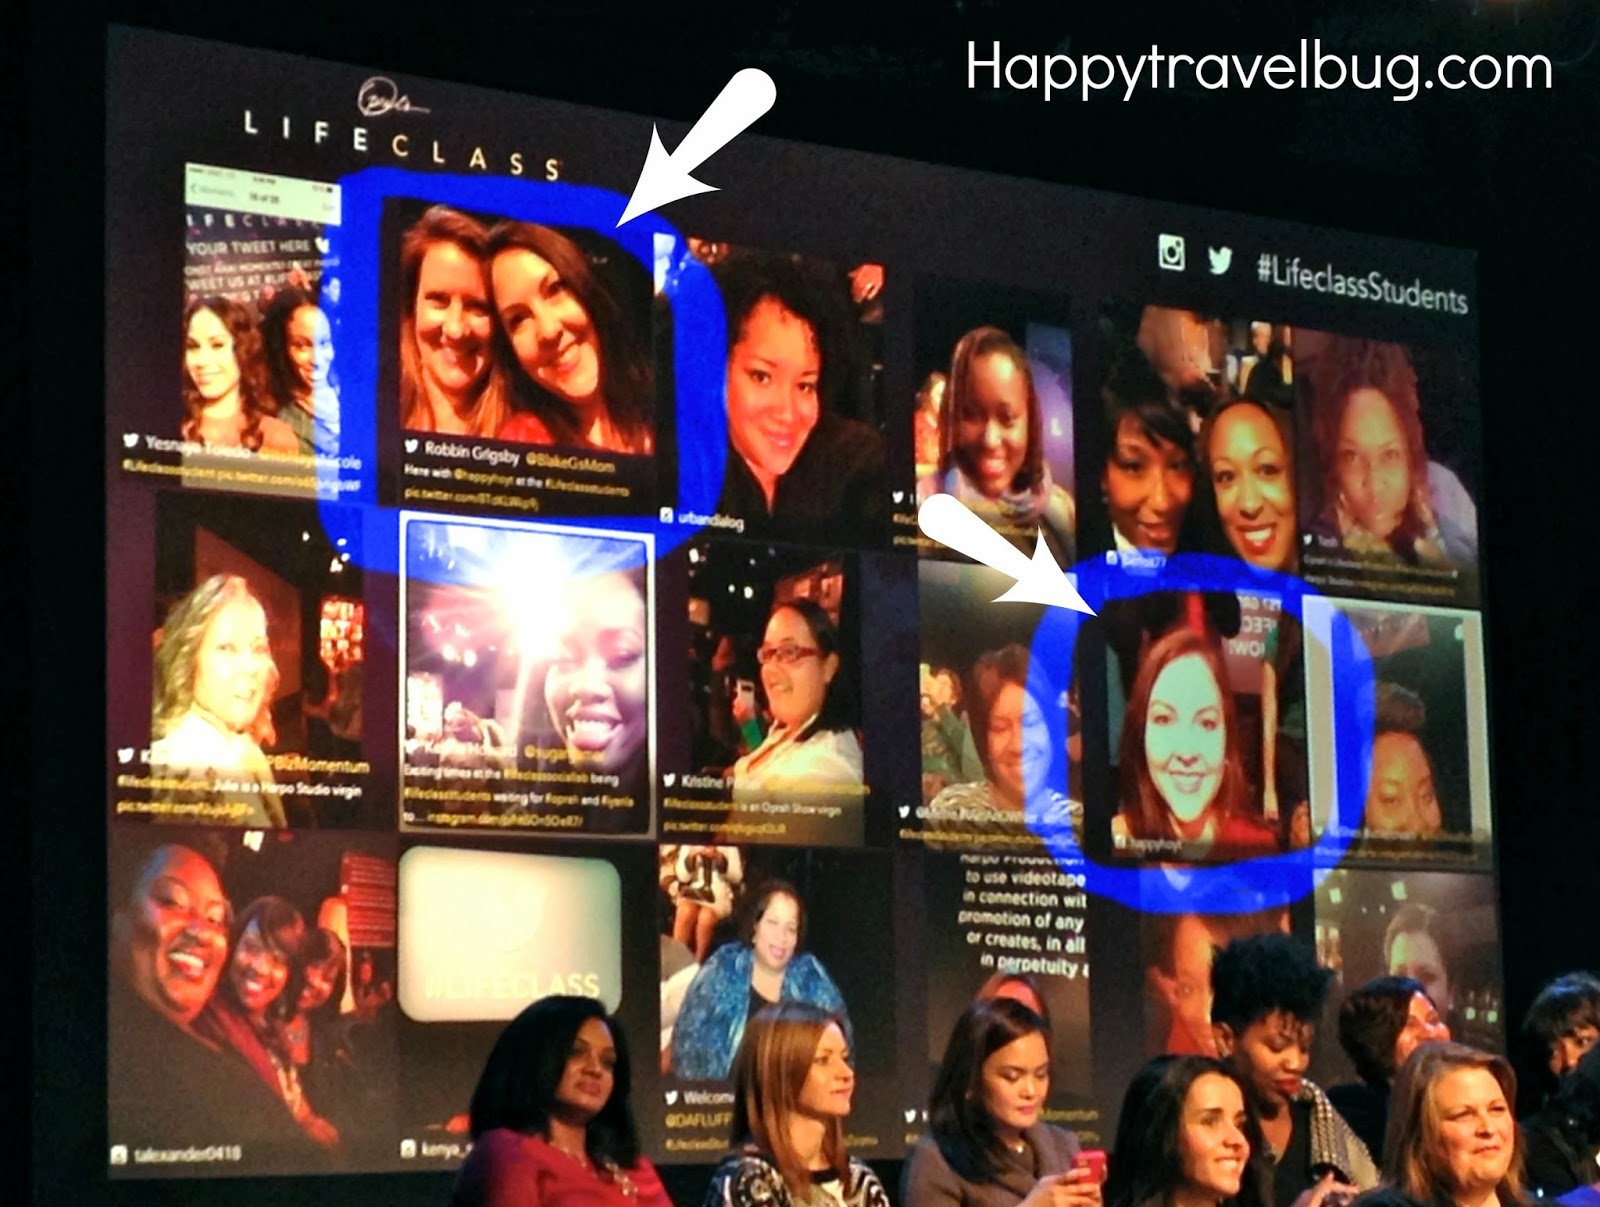 Me and my friend on the Lifeclass students board